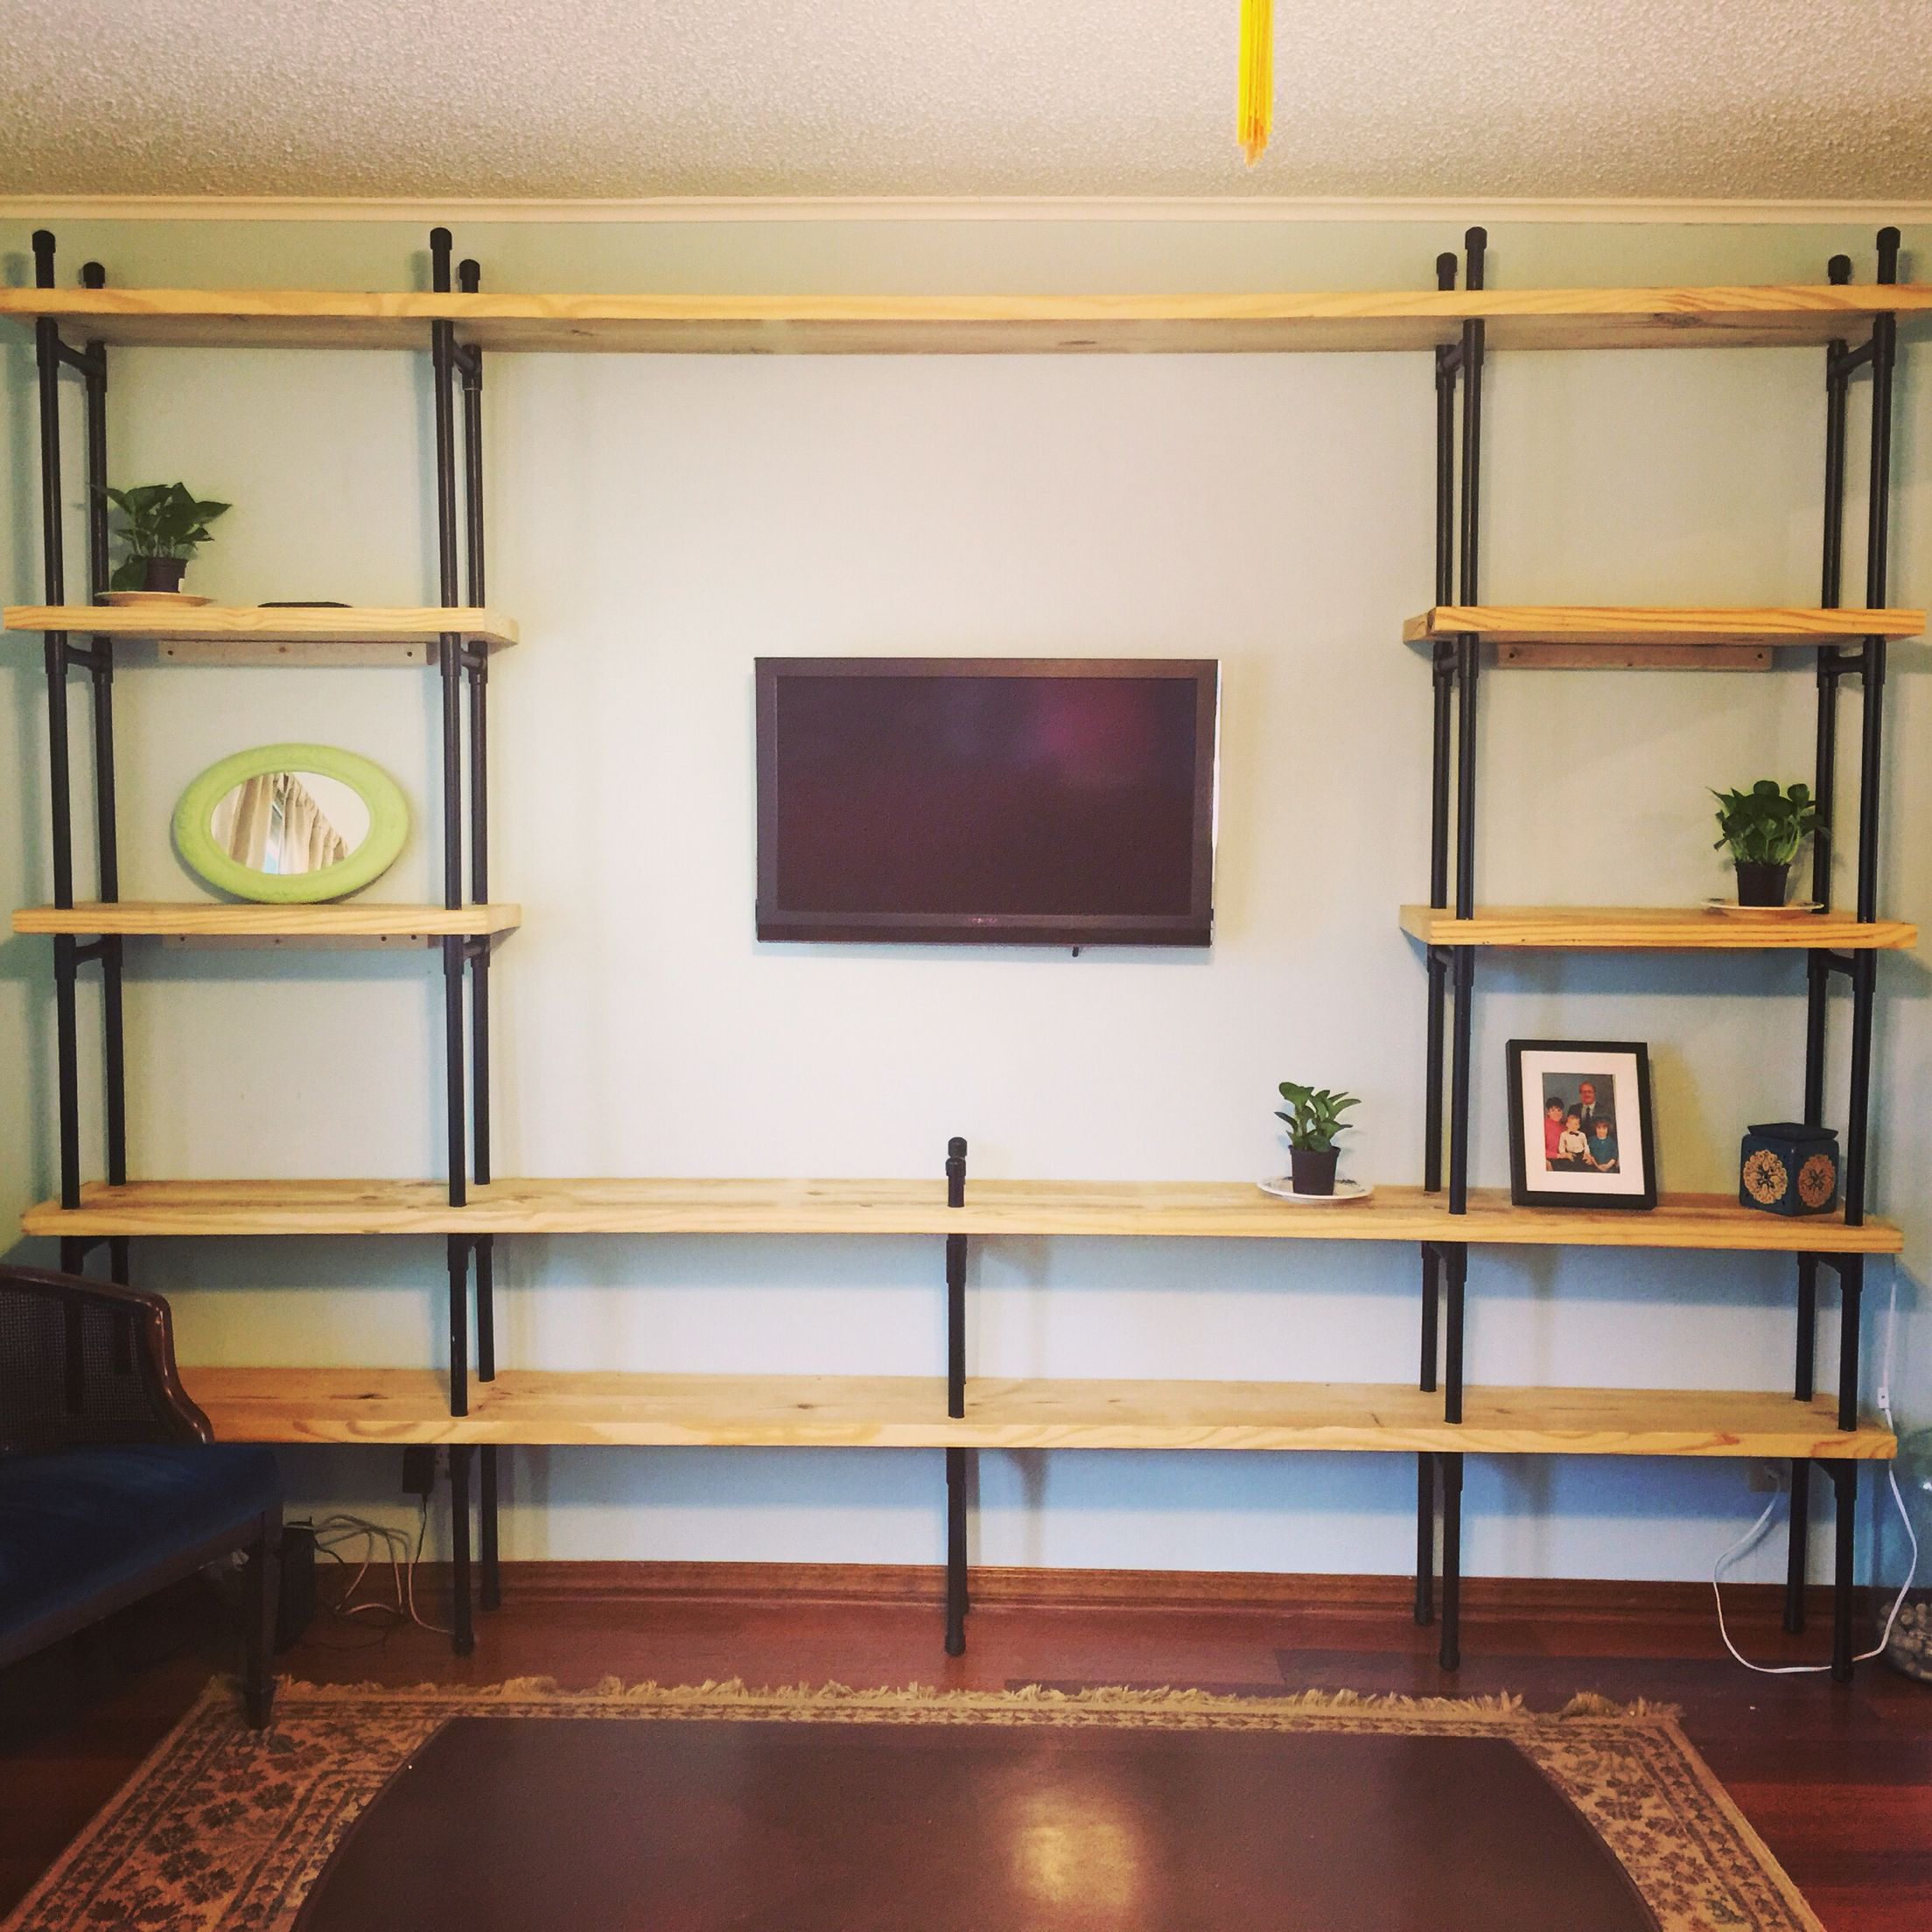 Completed Pvc Pipe Shelves Creations